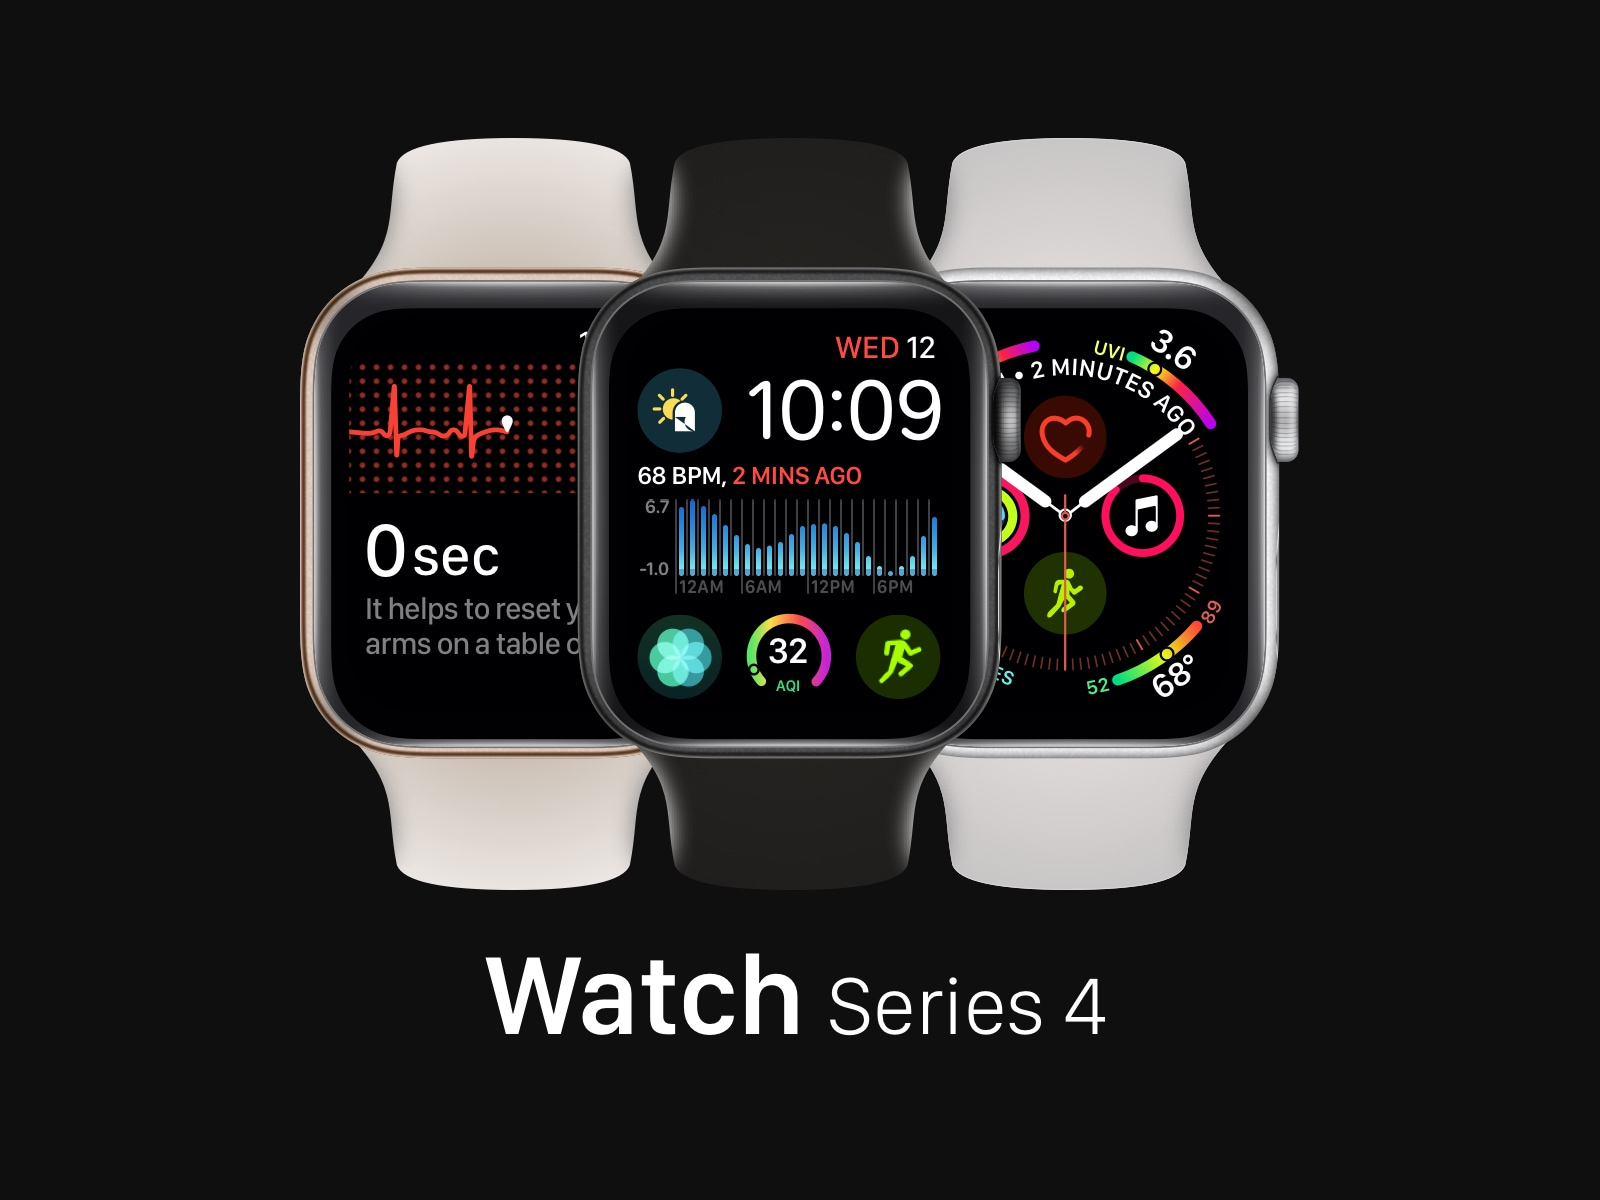 Apple Watch Series 4 Mockups - Easy-to-replace fully-vector based screen mockups for Watch Series 4 with all the color variants